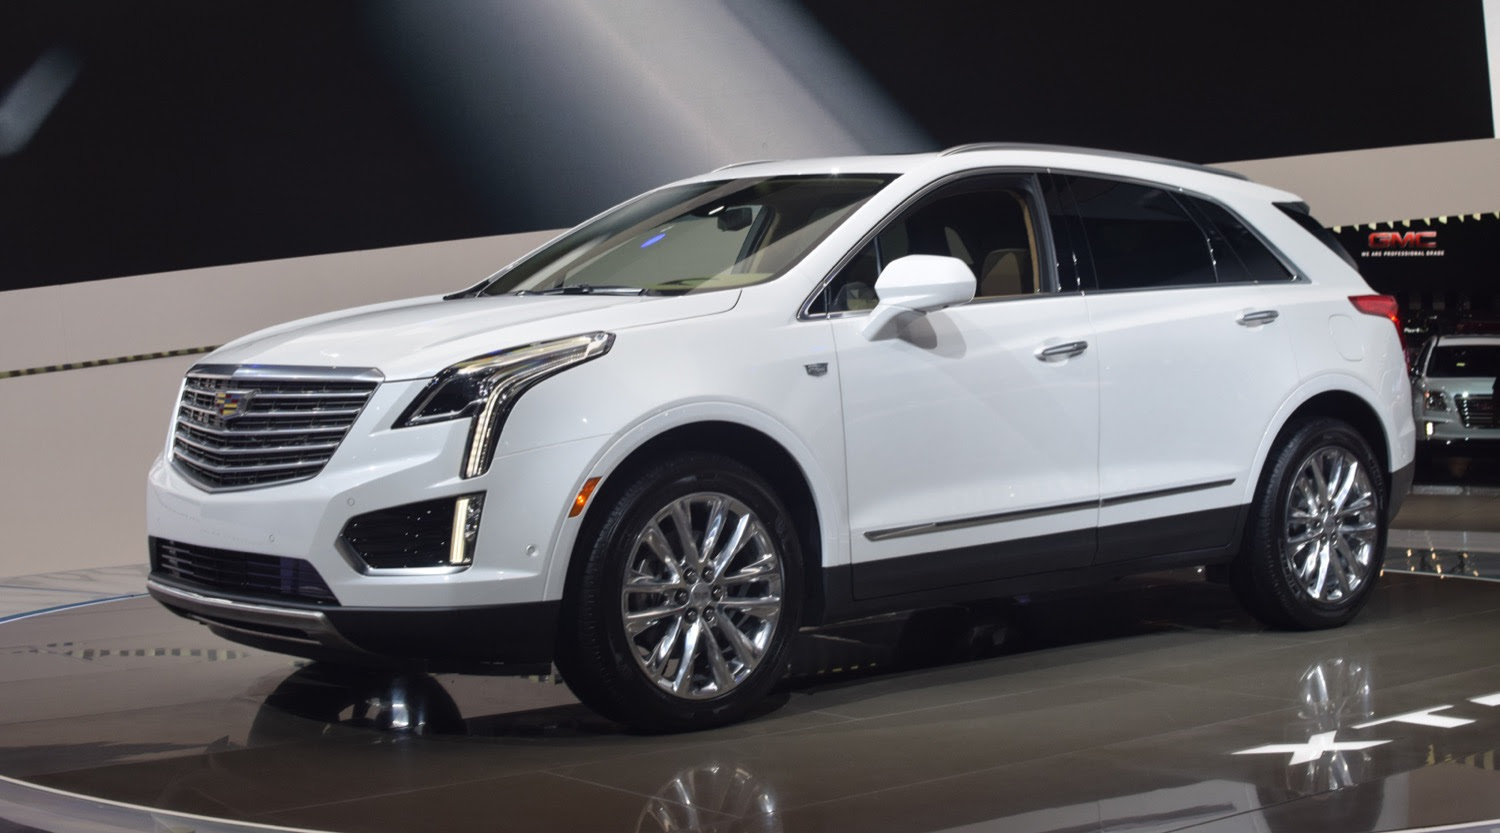 Comparing The Specs Of The 2017 Cadillac XT5 To The Outgoing SRX